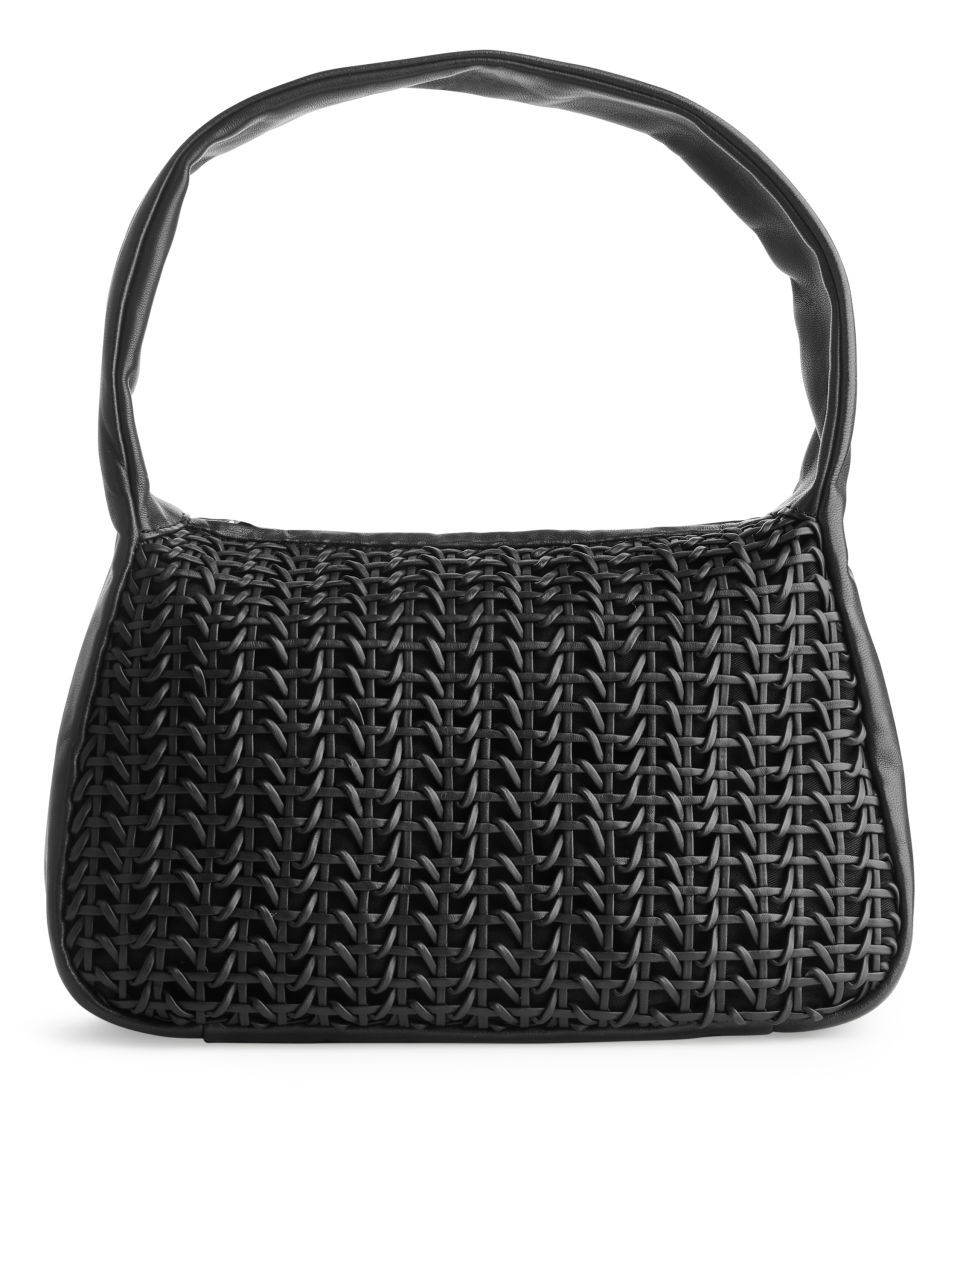 Woven Leather Bag - Black